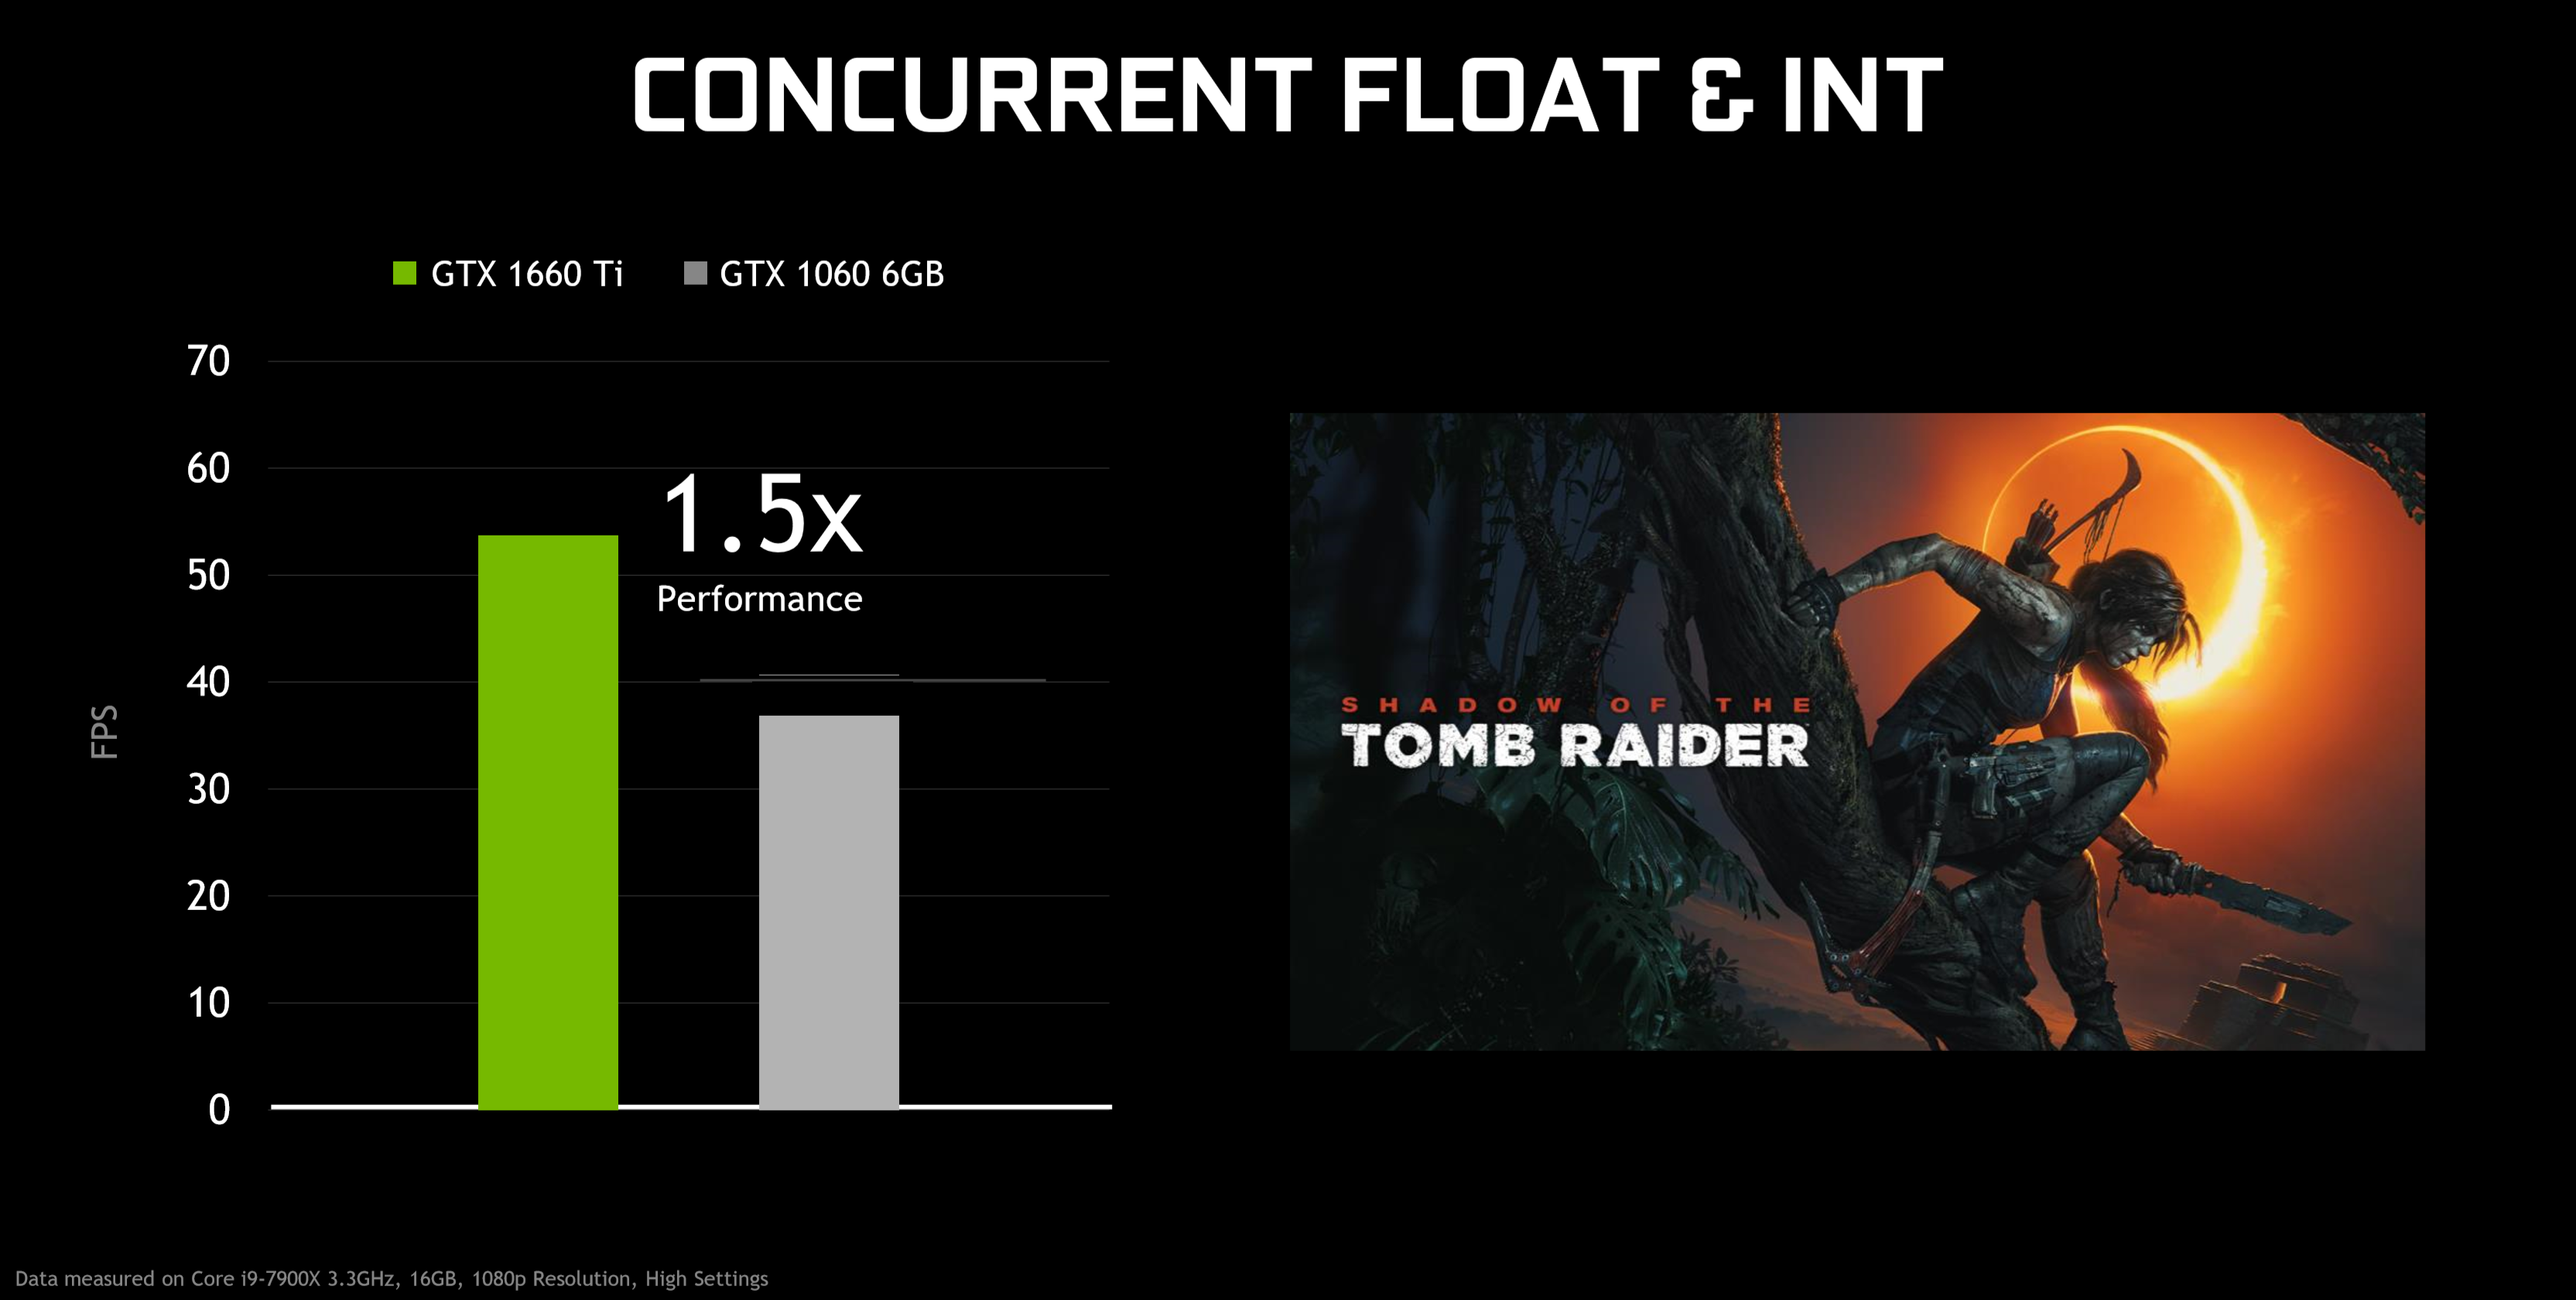 GeForce GTX 1660 Ti's Advanced Shaders Accelerate